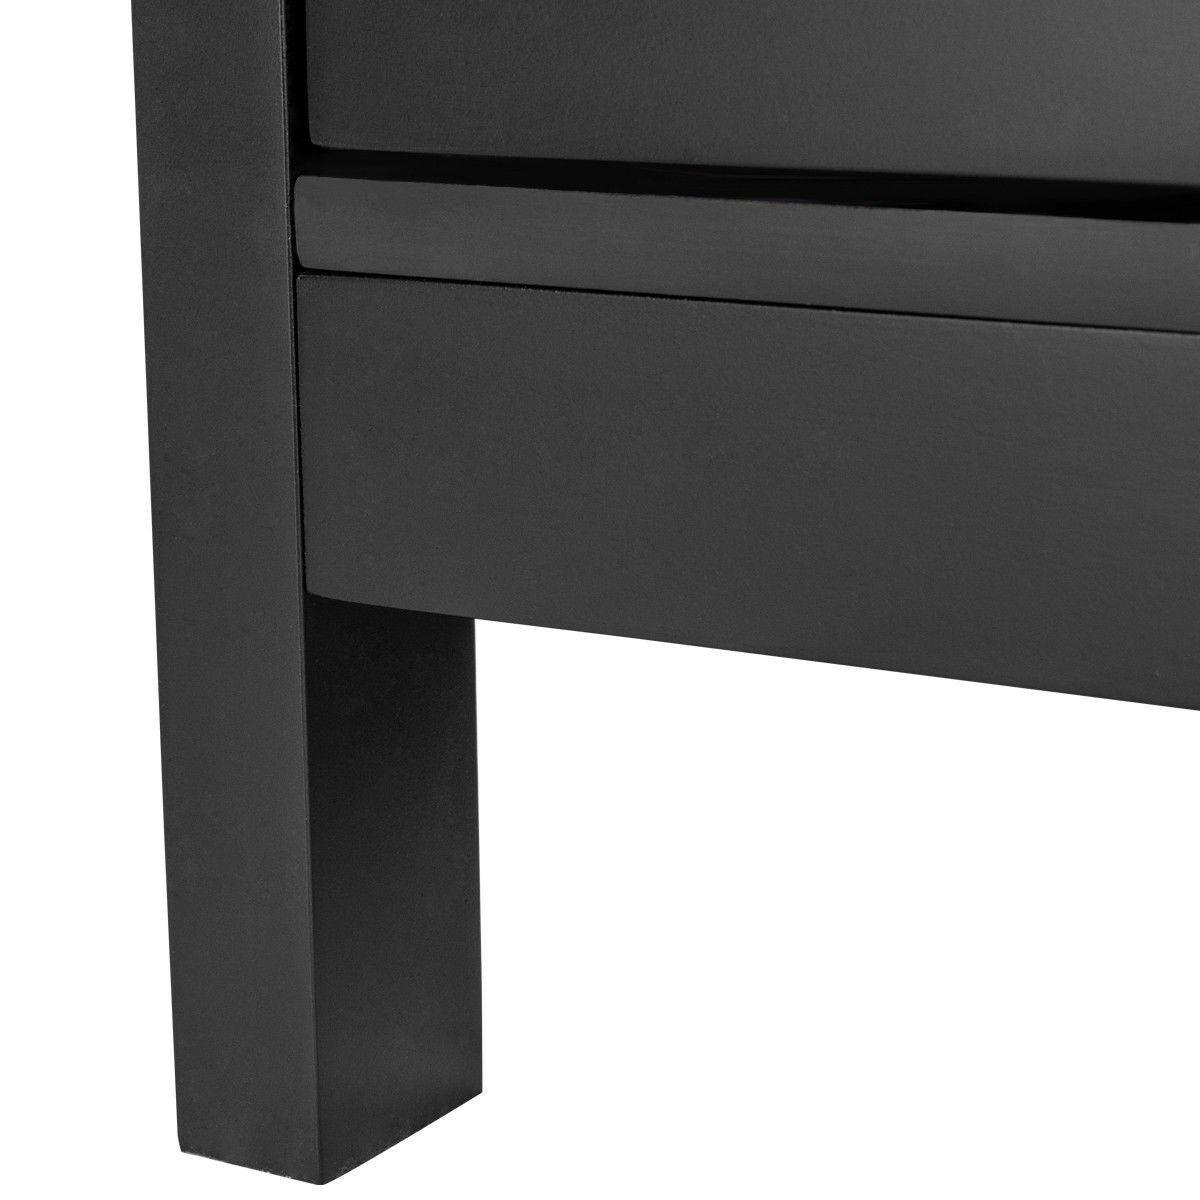 "Black 50"" Wood Entertainment Media Center"